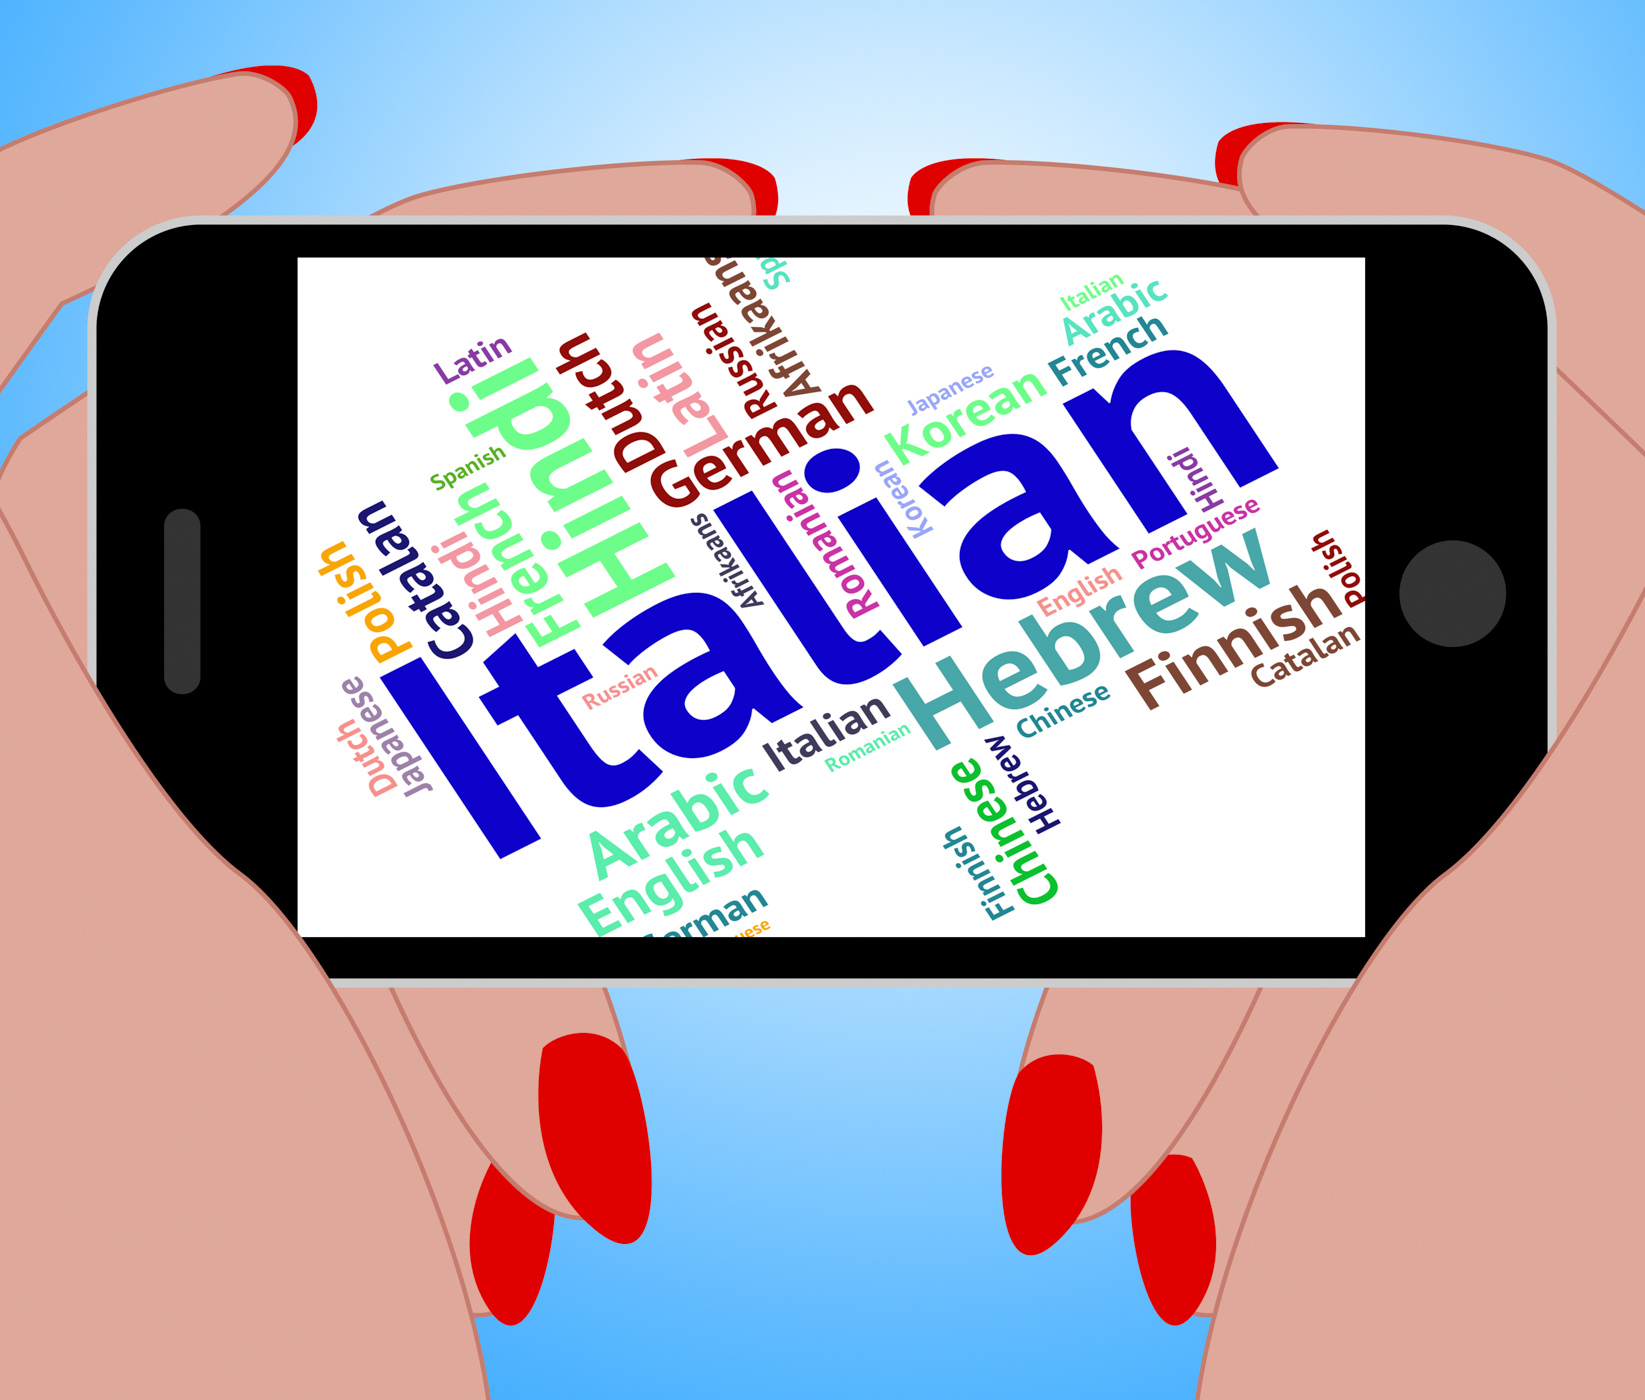 Italian language indicates speech text and foreign photo